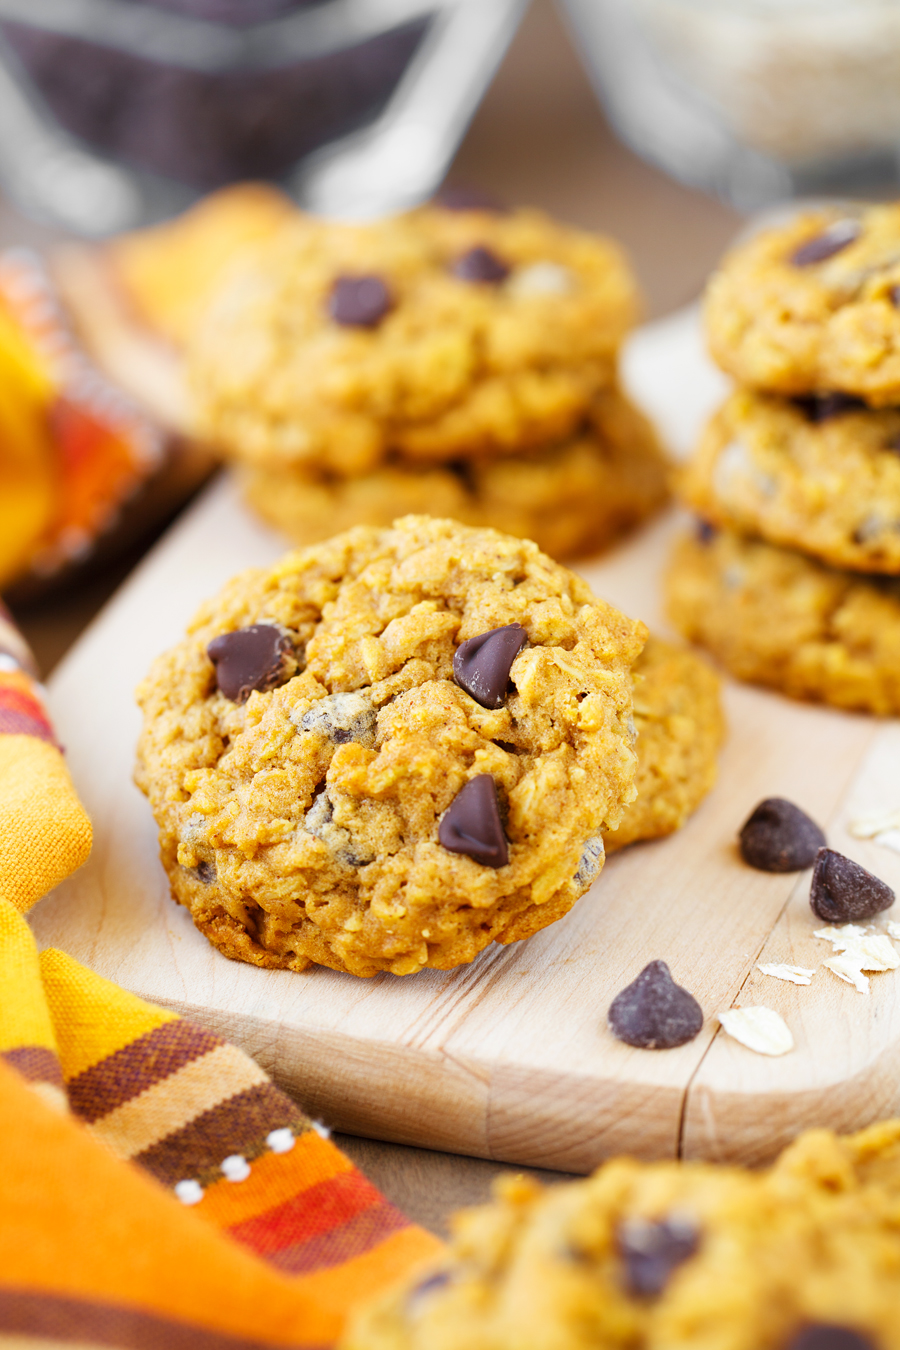 These Pumpkin Chocolate Chip Oatmeal Cookies are a delicious and soft cookie that's full of fall flavor! Canned pumpkin, cinnamon, oats, and chocolate make for a delicious fall cookie your whole family will love!